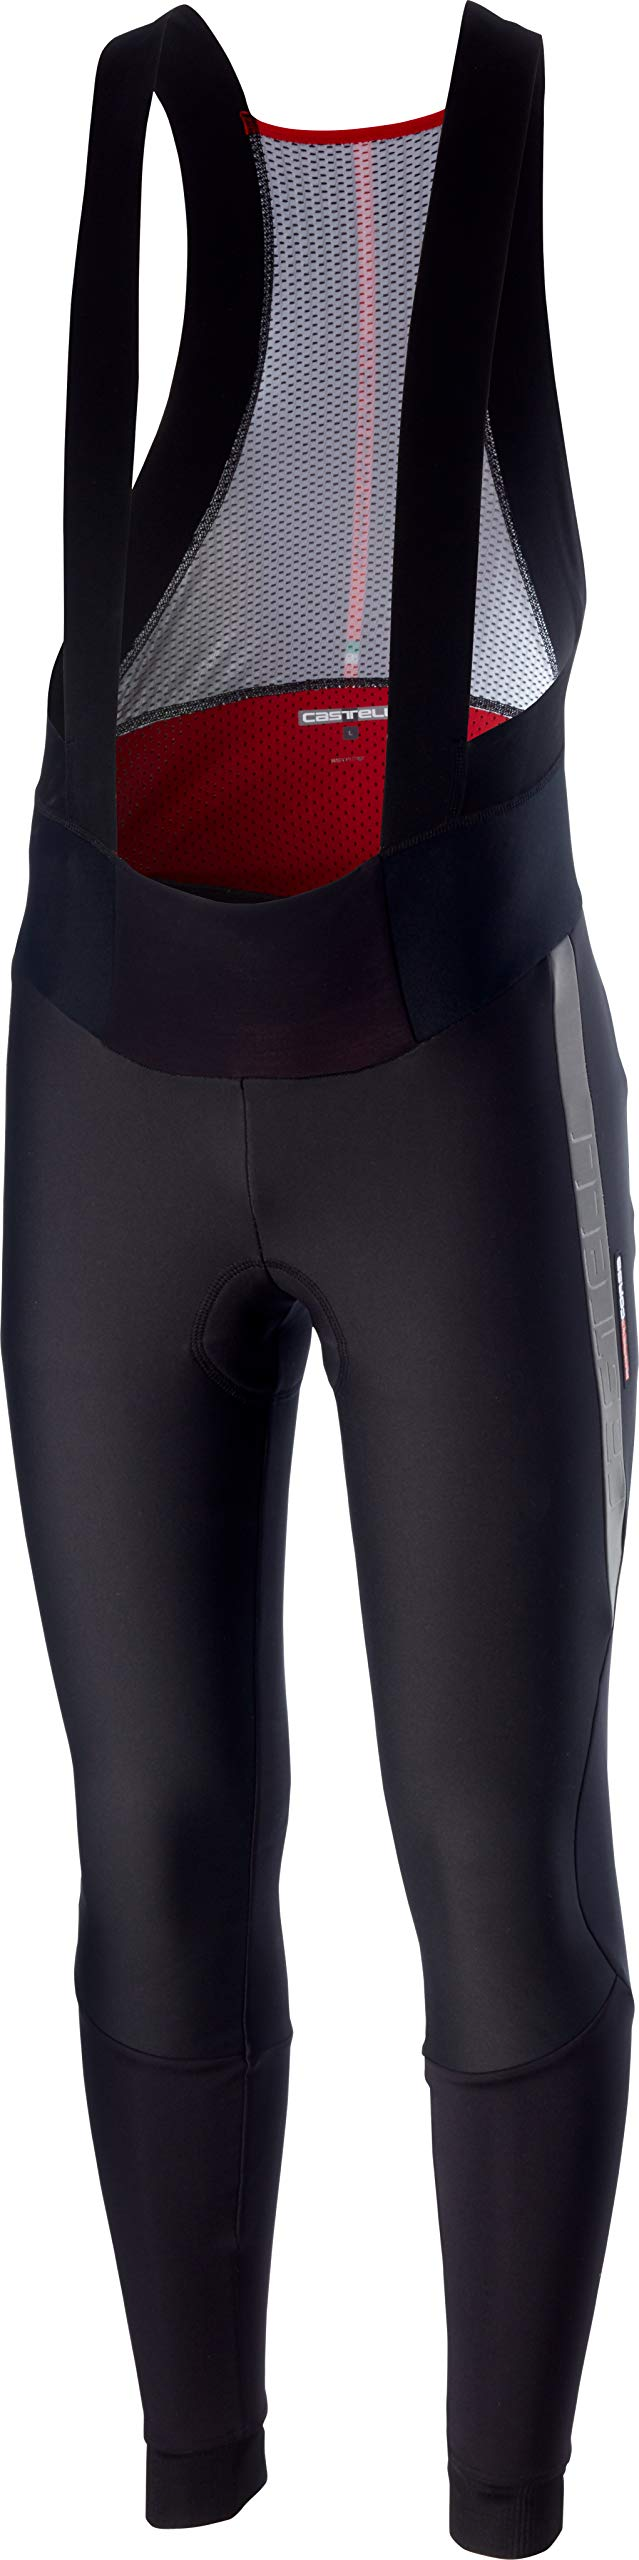 Castelli Sorpasso 2 Wind Bibtight Small Black/Reflex